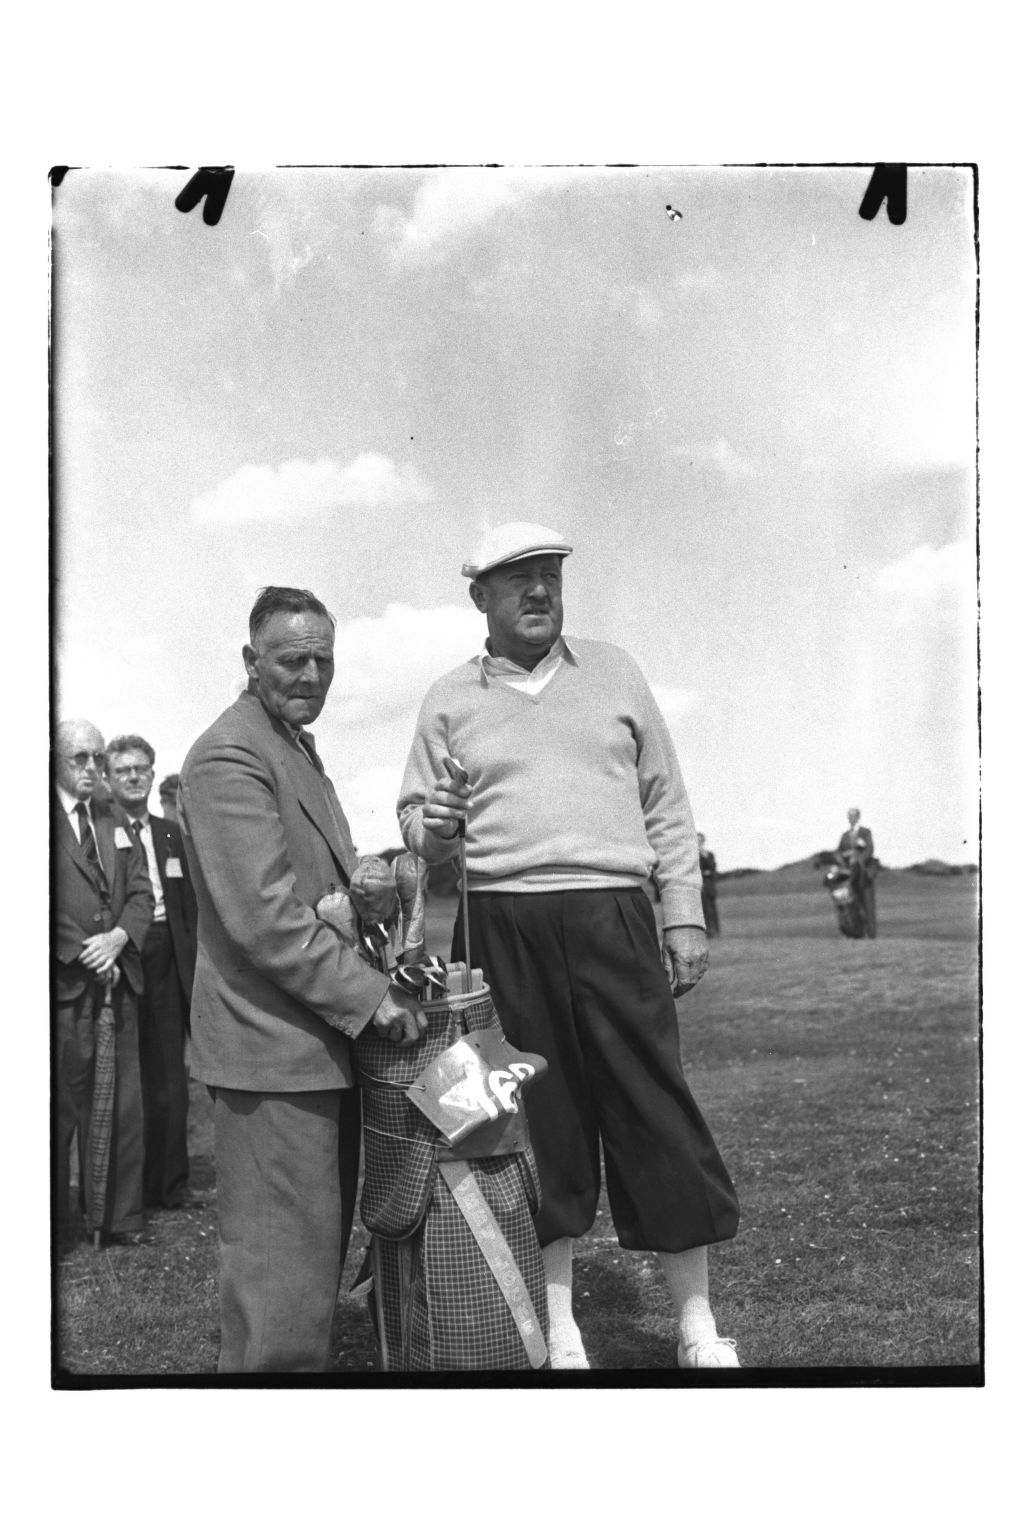 Bobby Locke playing in the final of the Open Championship, the Old Course, St Andrews.